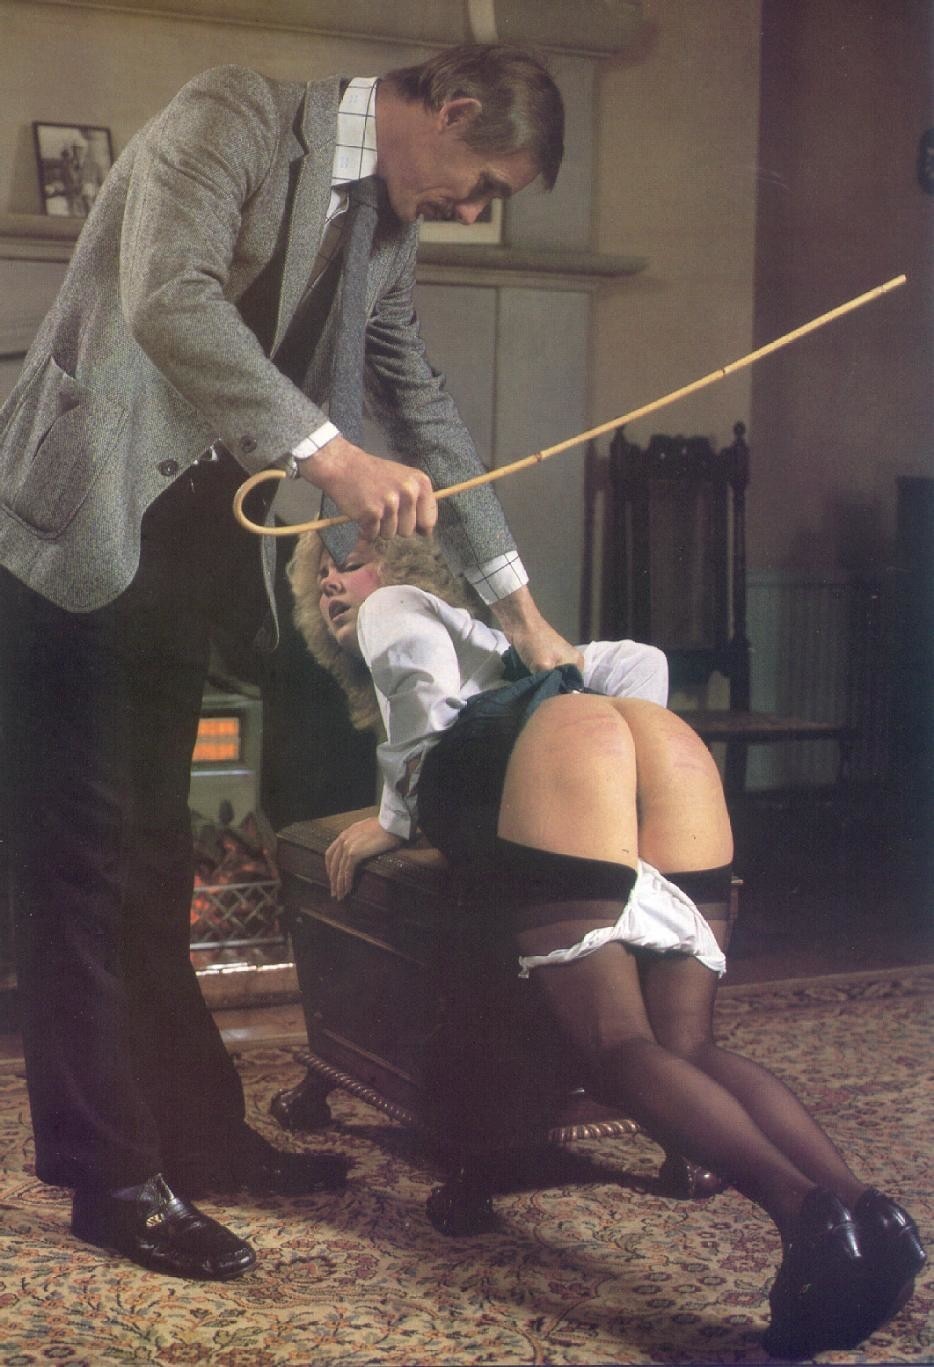 Spanking Stories with Pics by EroticTymes